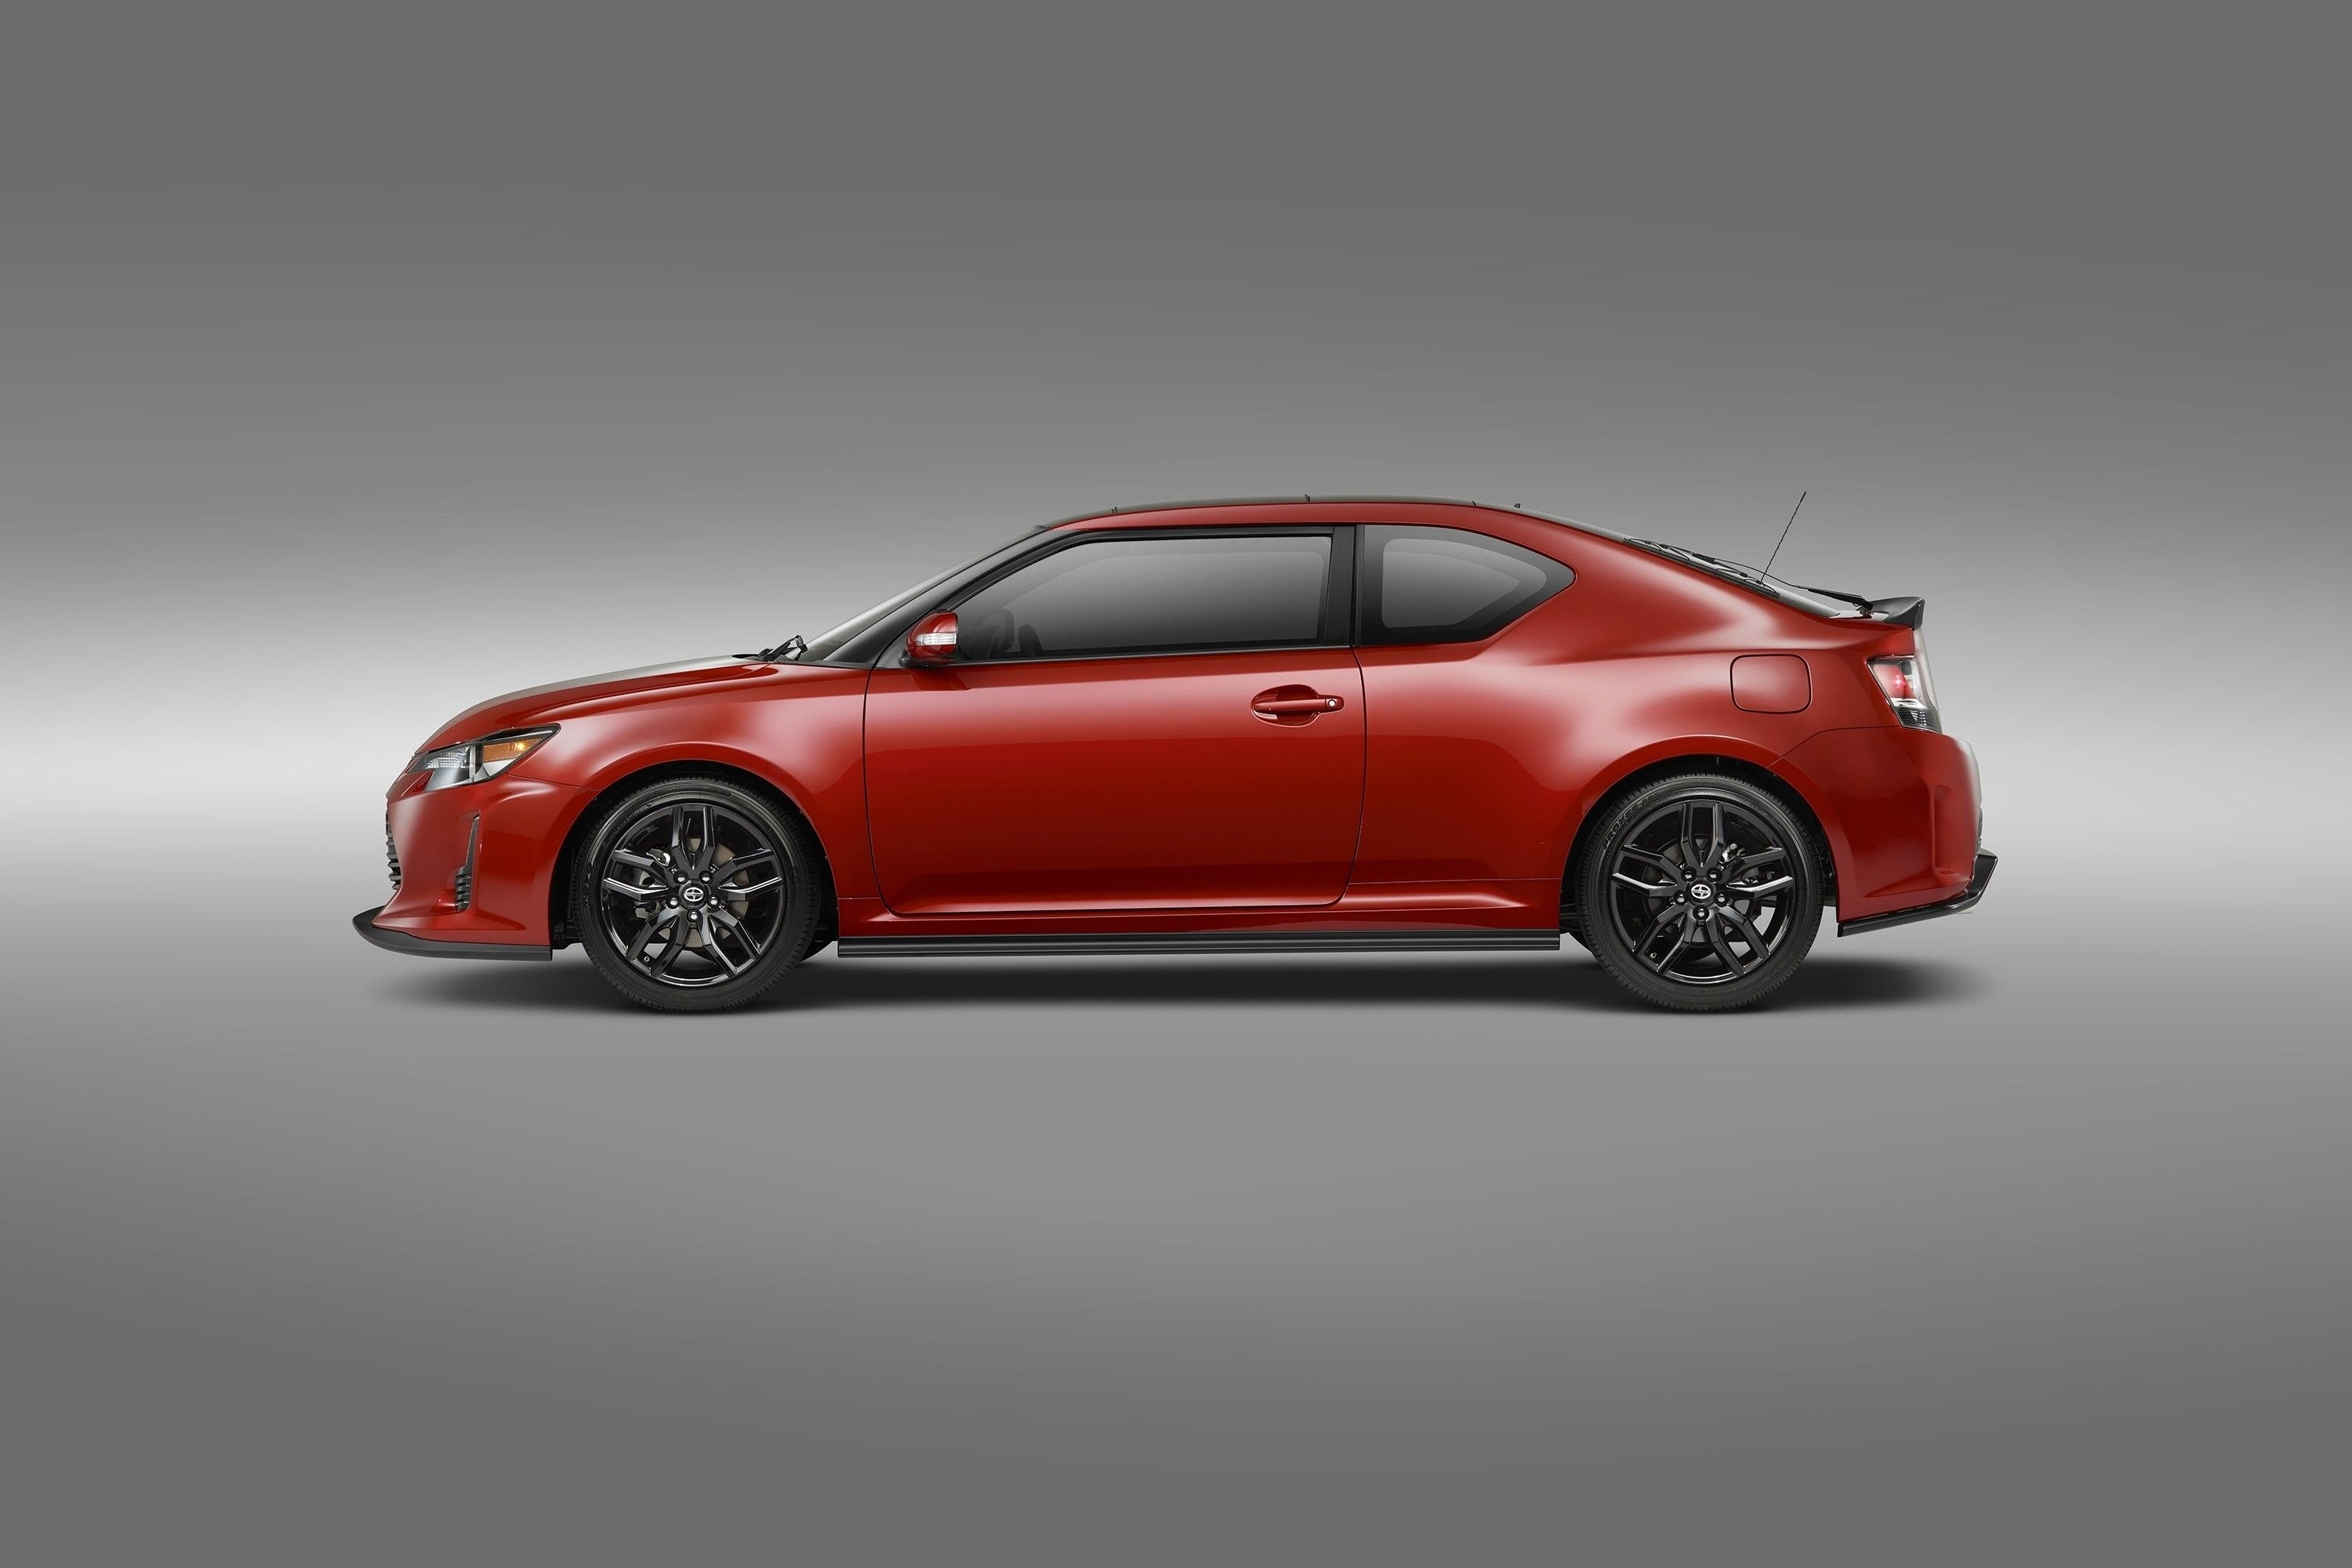 84 The 2020 Scion TC Images